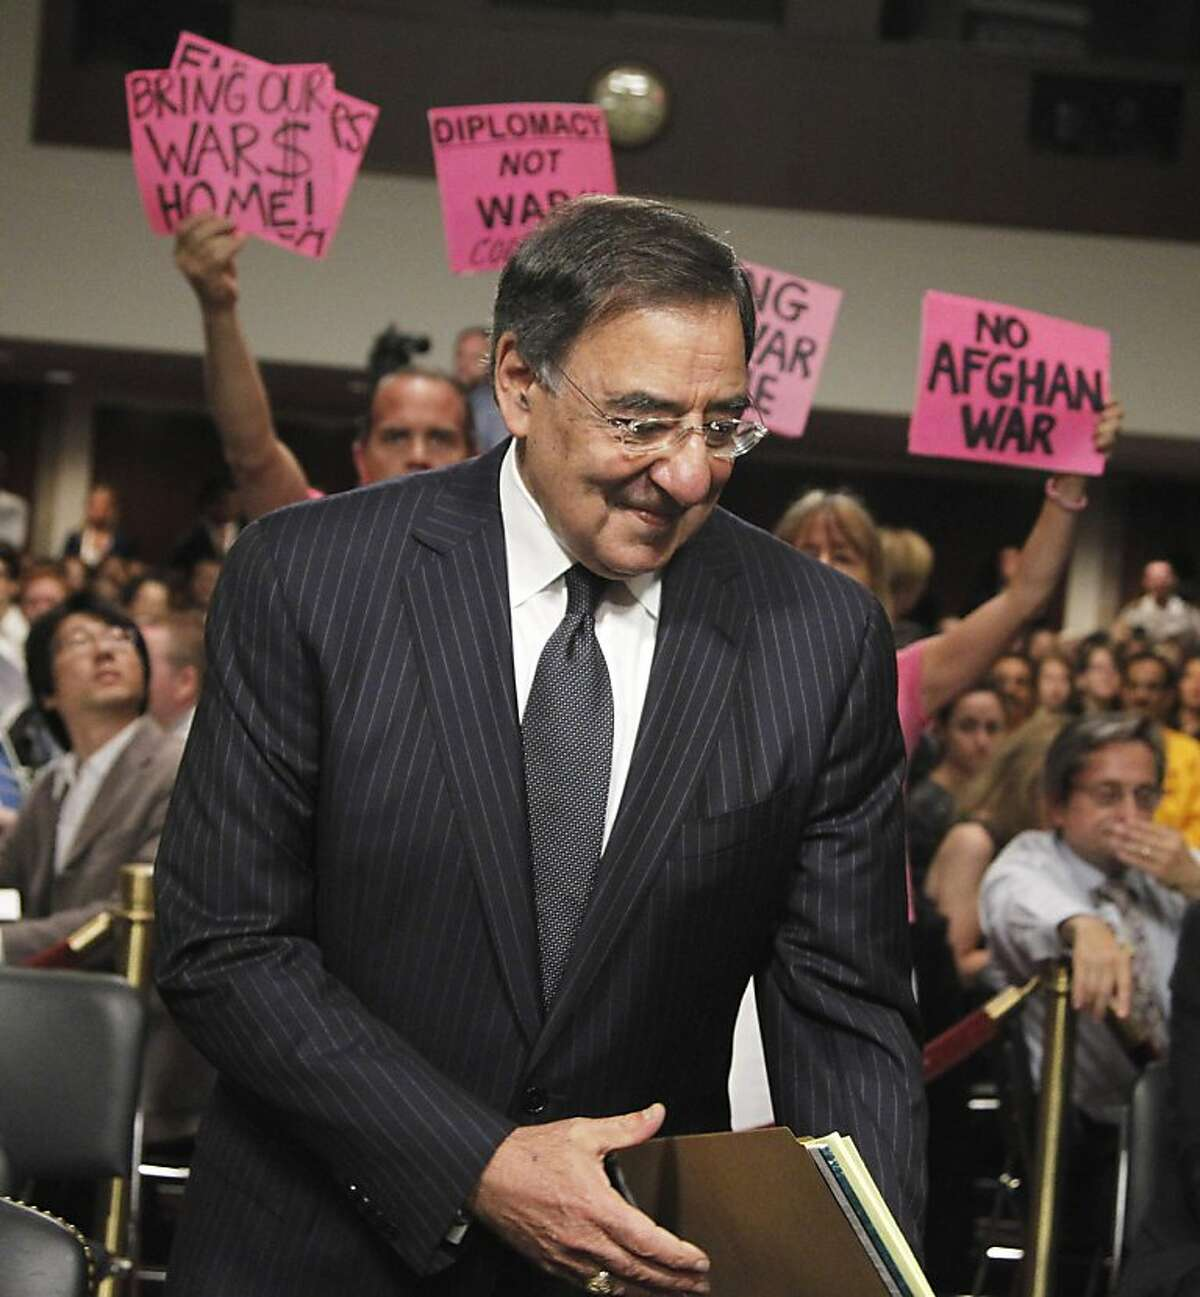 CodePink demonstrators greet Defense Secretary nominee, CIA Director Leon Panetta, as he arrives on Capitol Hill in Washington, Thursday, June 9, 2011, to testify before the Senate Armed Service Committee hearing on his nomination.